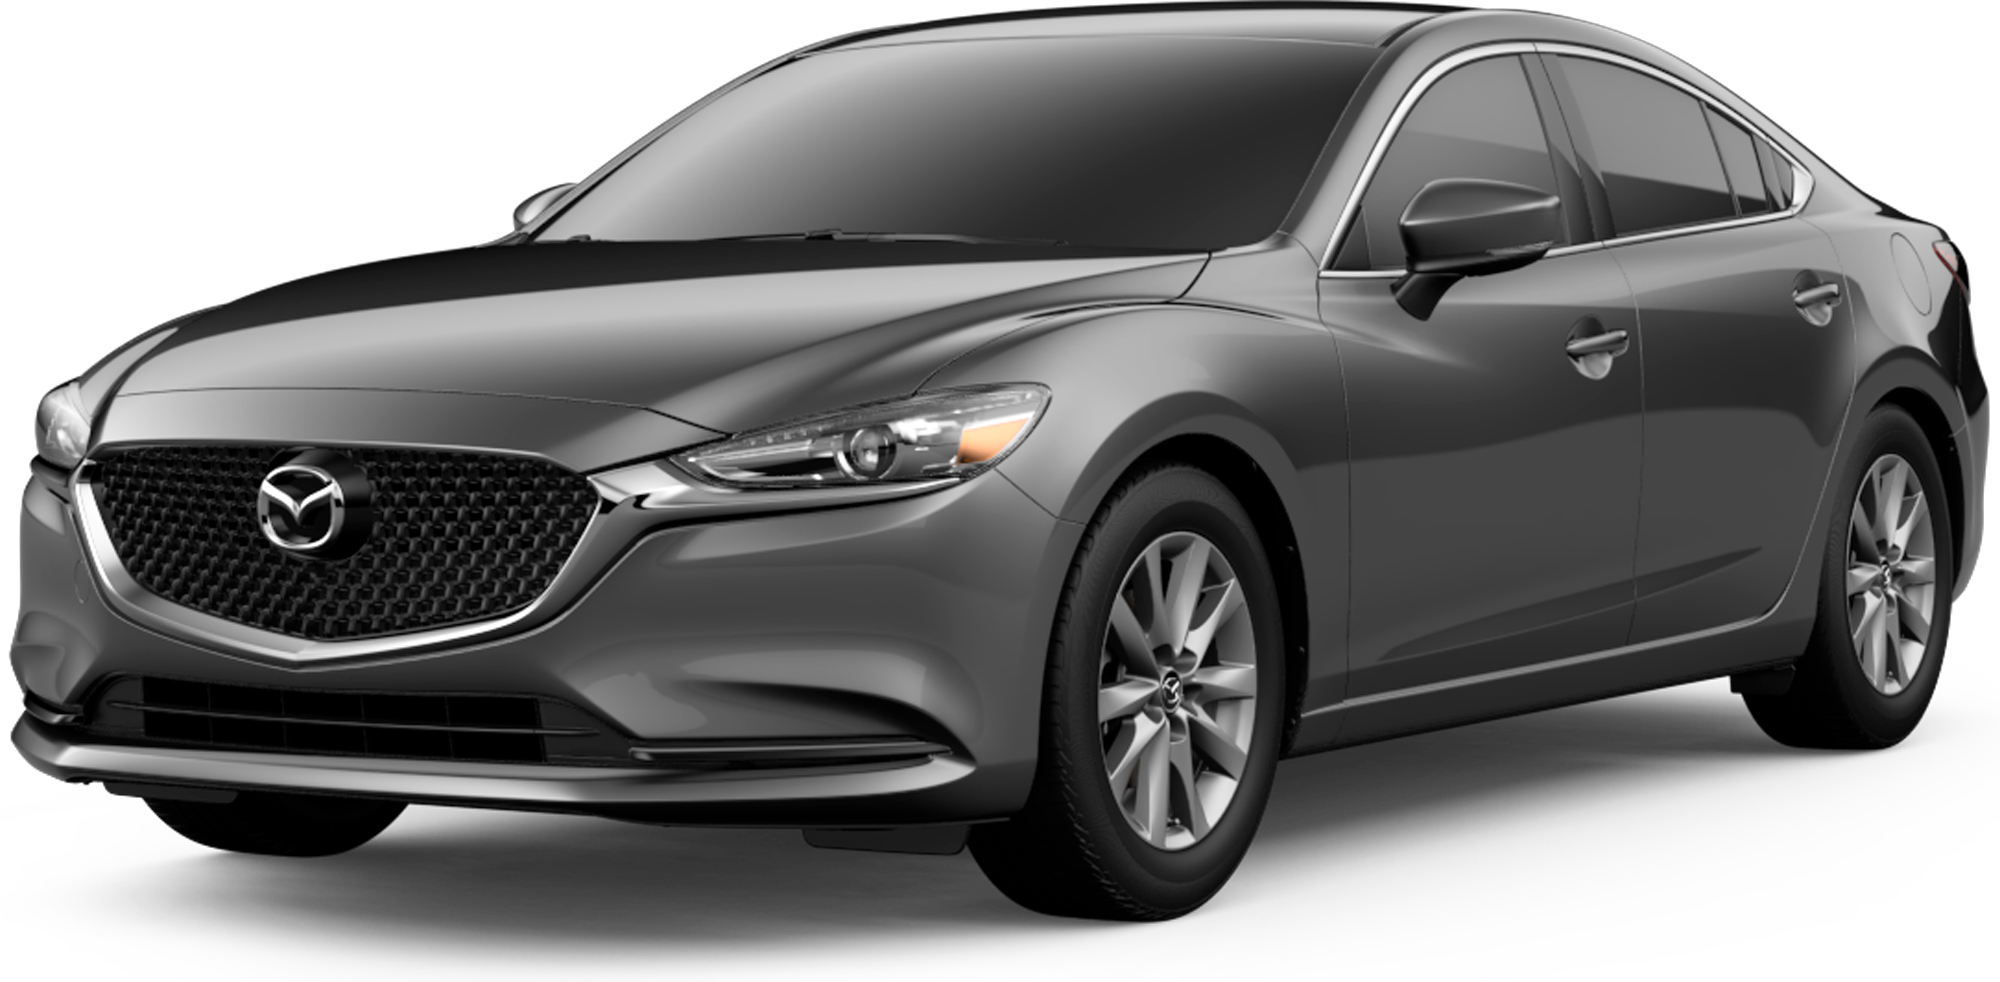 Mazda Mazda6 inventory for sale image